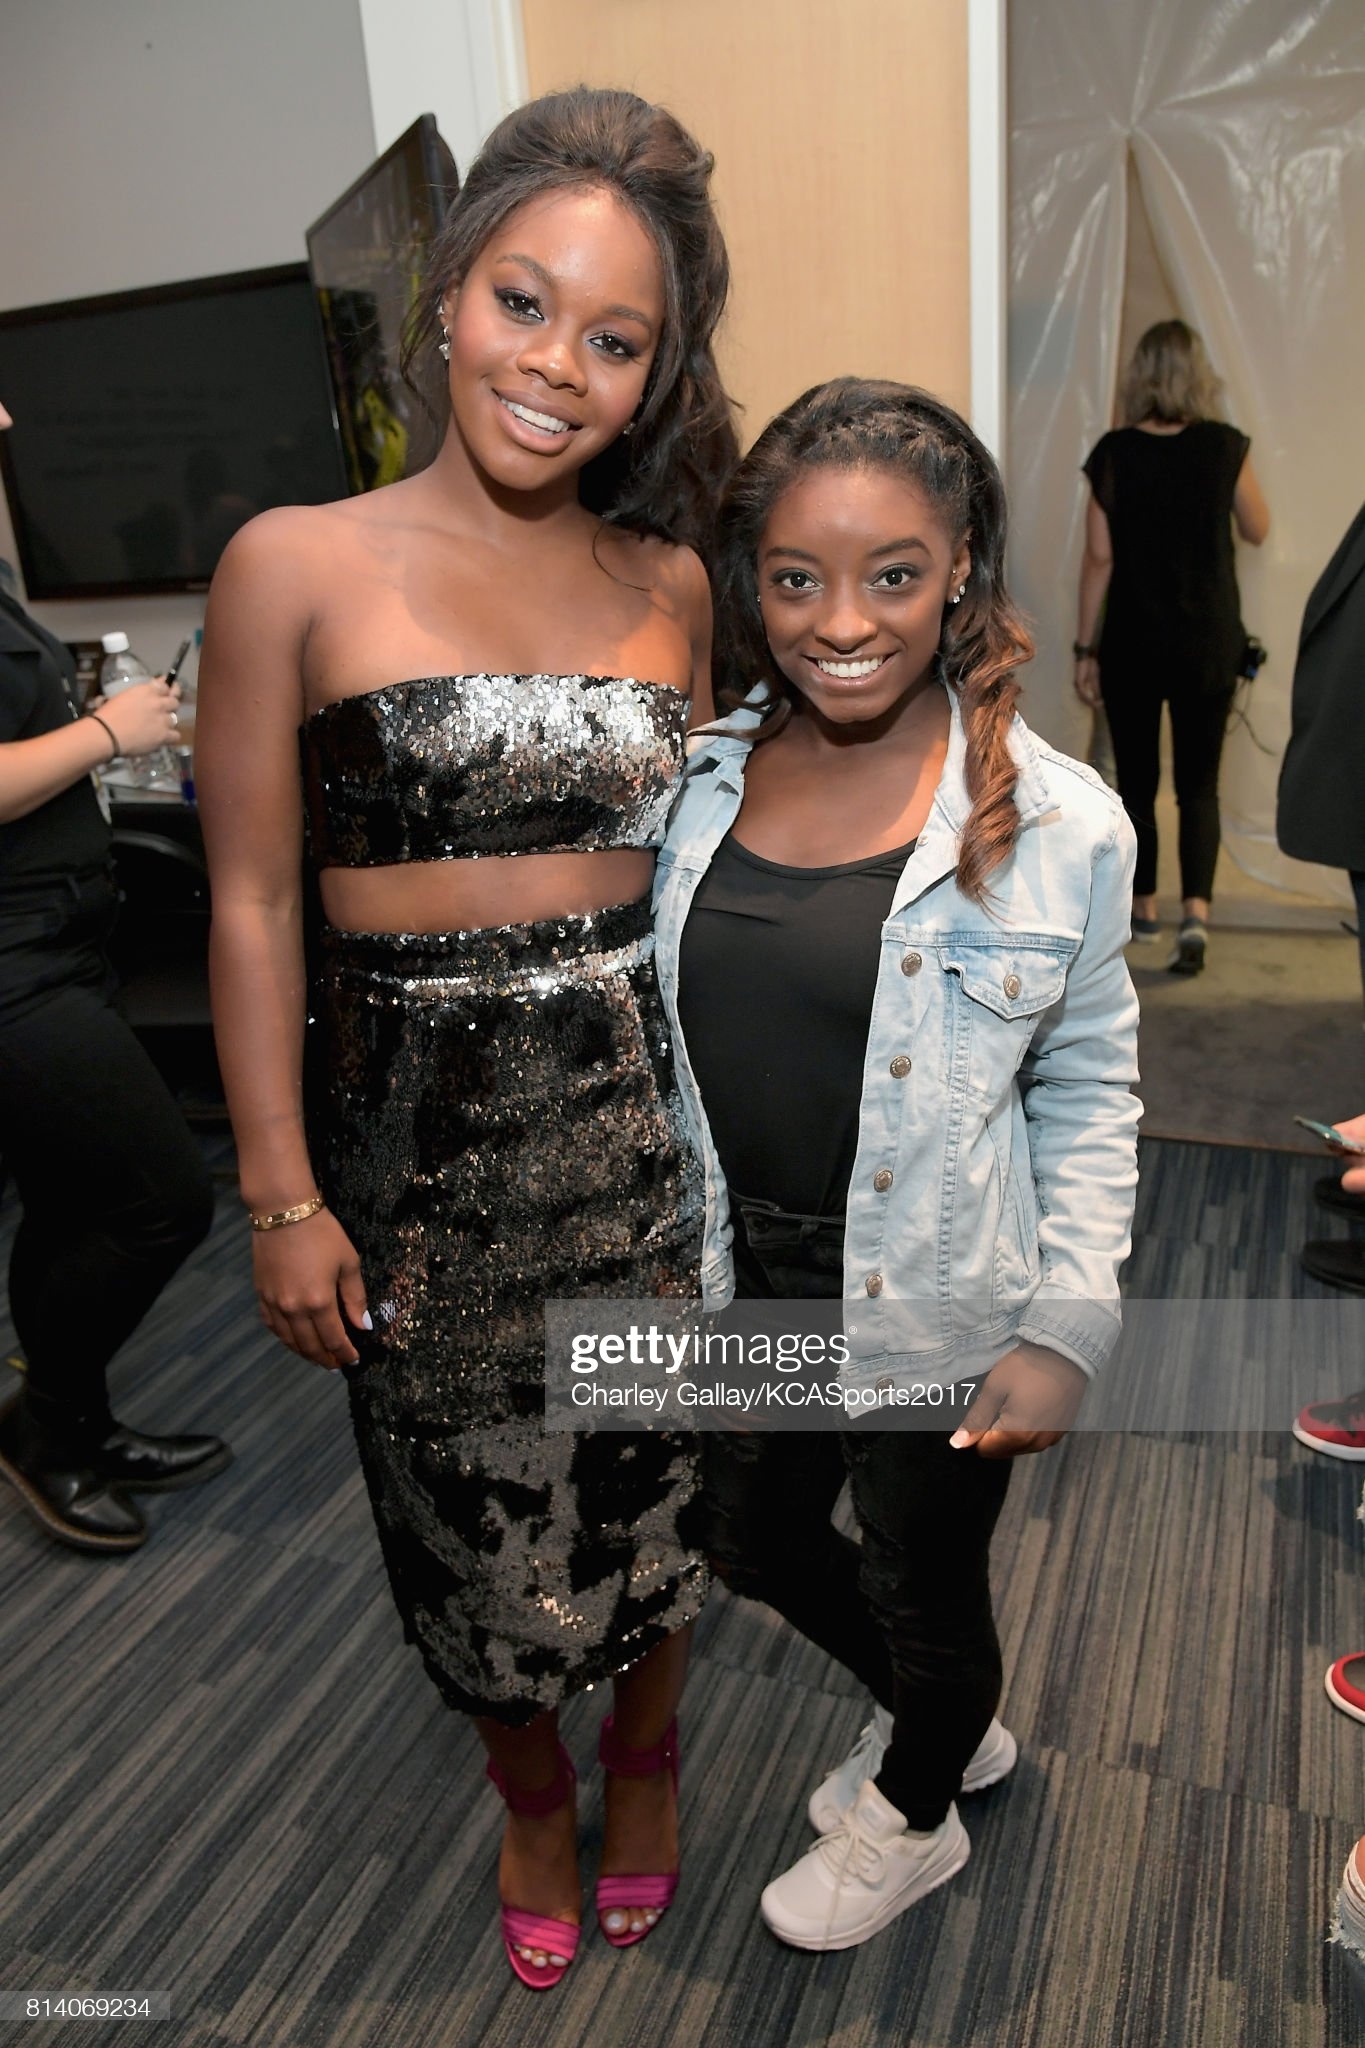 ¿Cuánto mide Gabby Douglas? - Real height Olympic-gymnasts-gabby-douglas-and-simone-biles-attend-nickelodeon-picture-id814069234?s=2048x2048